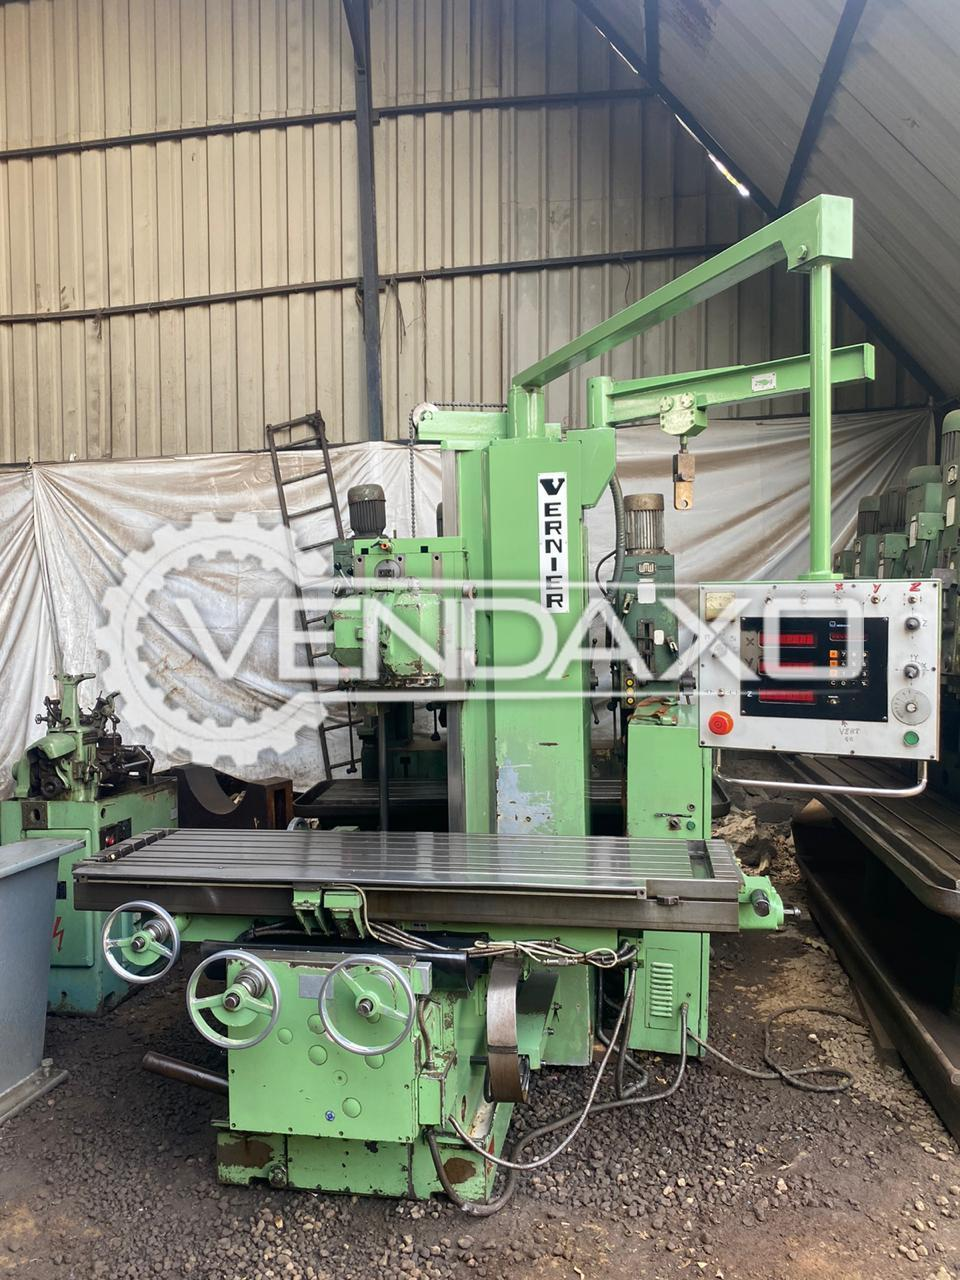 Vernier DB-520 Bed Milling Machine - Table Size : 2000 x 500 mm